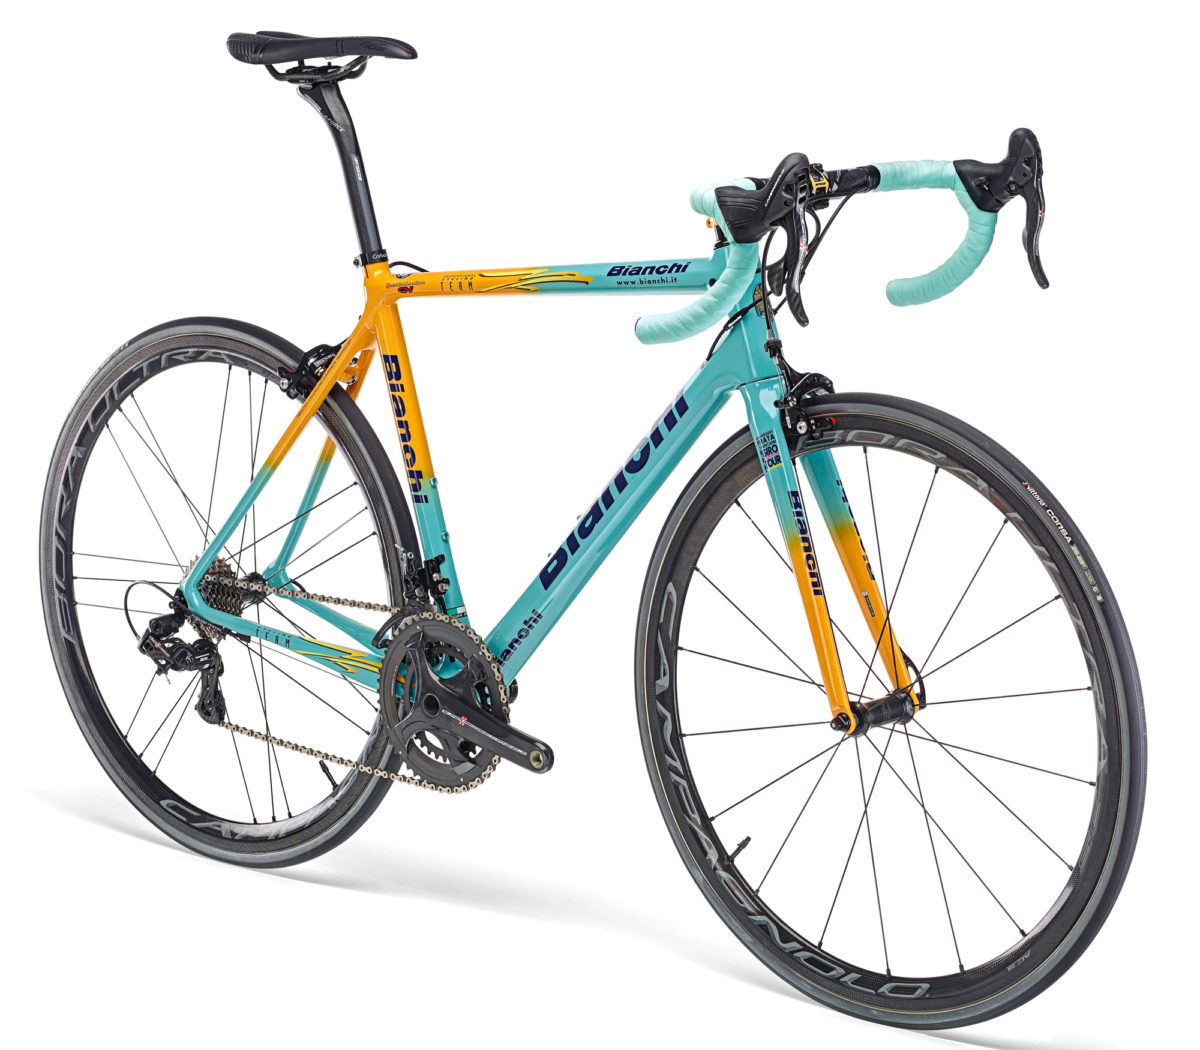 Bianchi paints up a limited 20th Anniversary run of Specialissima ...